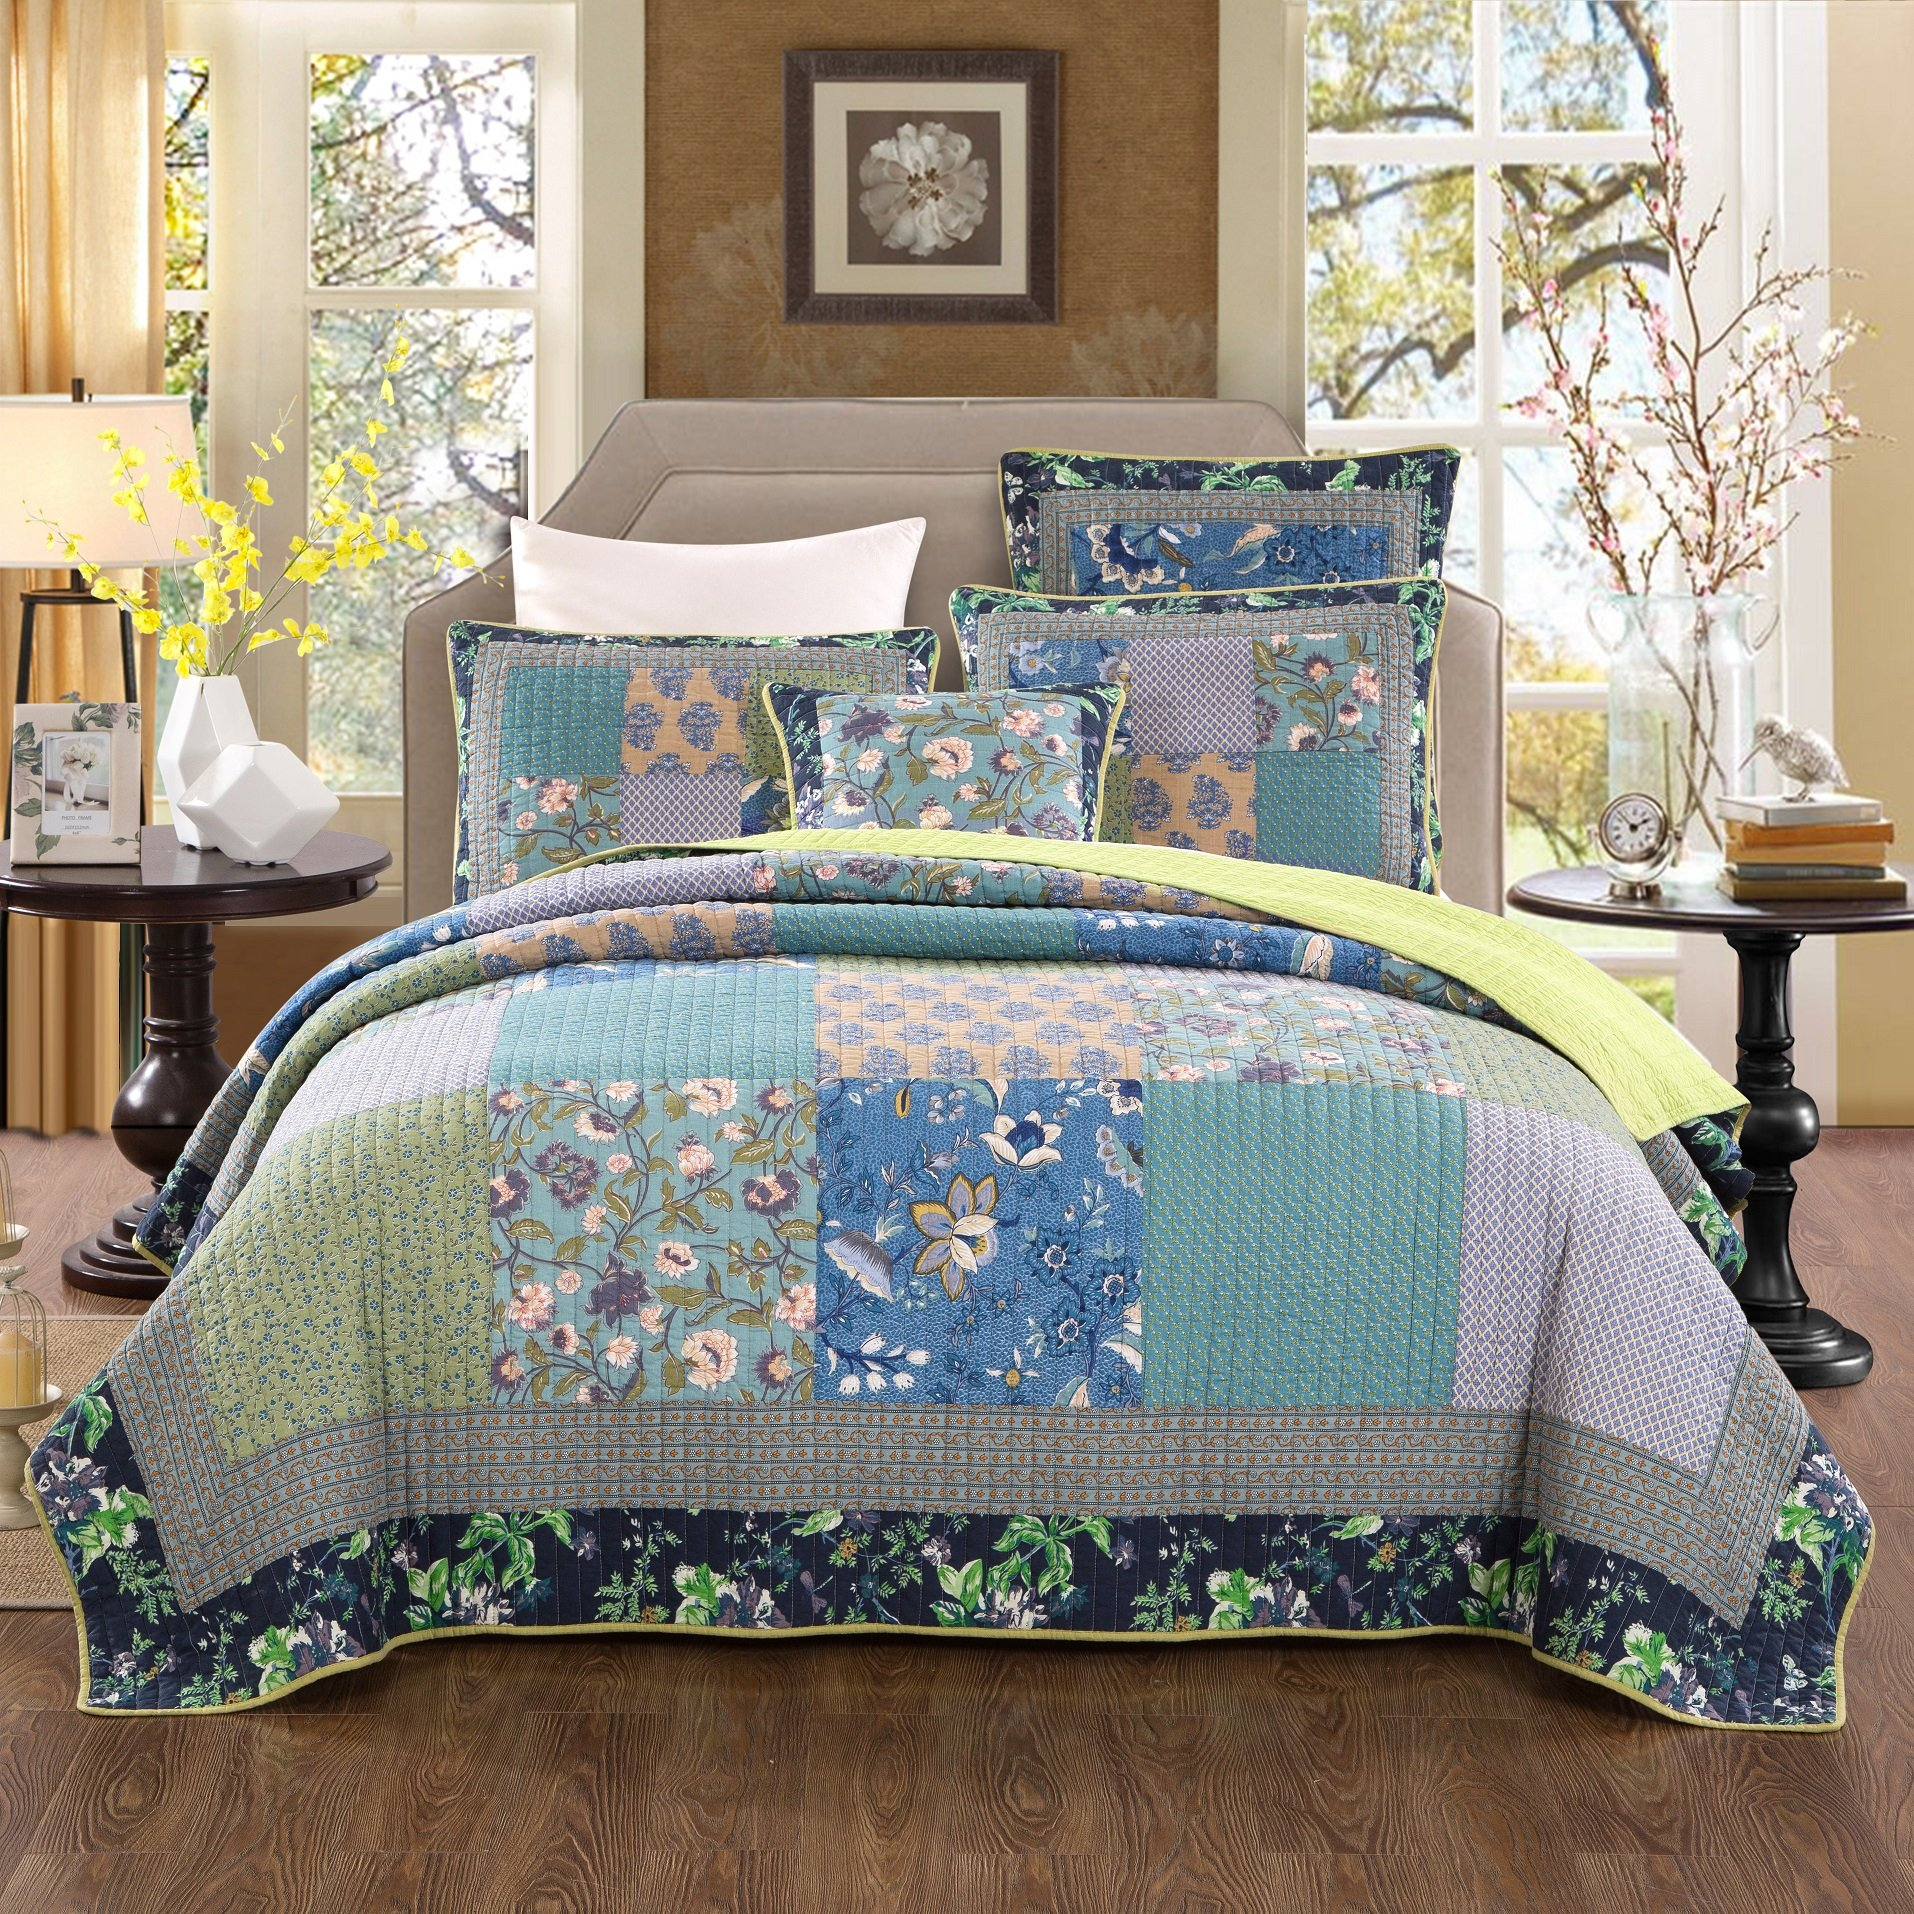 Tache Home Fashion Bohemian Tropical Calla Lily Patchwork Quilted Coverlet Bedspread Set - Bright Vibrant Multi Colorful Navy Blue Green Yellow Floral Print - King - 3-Pieces